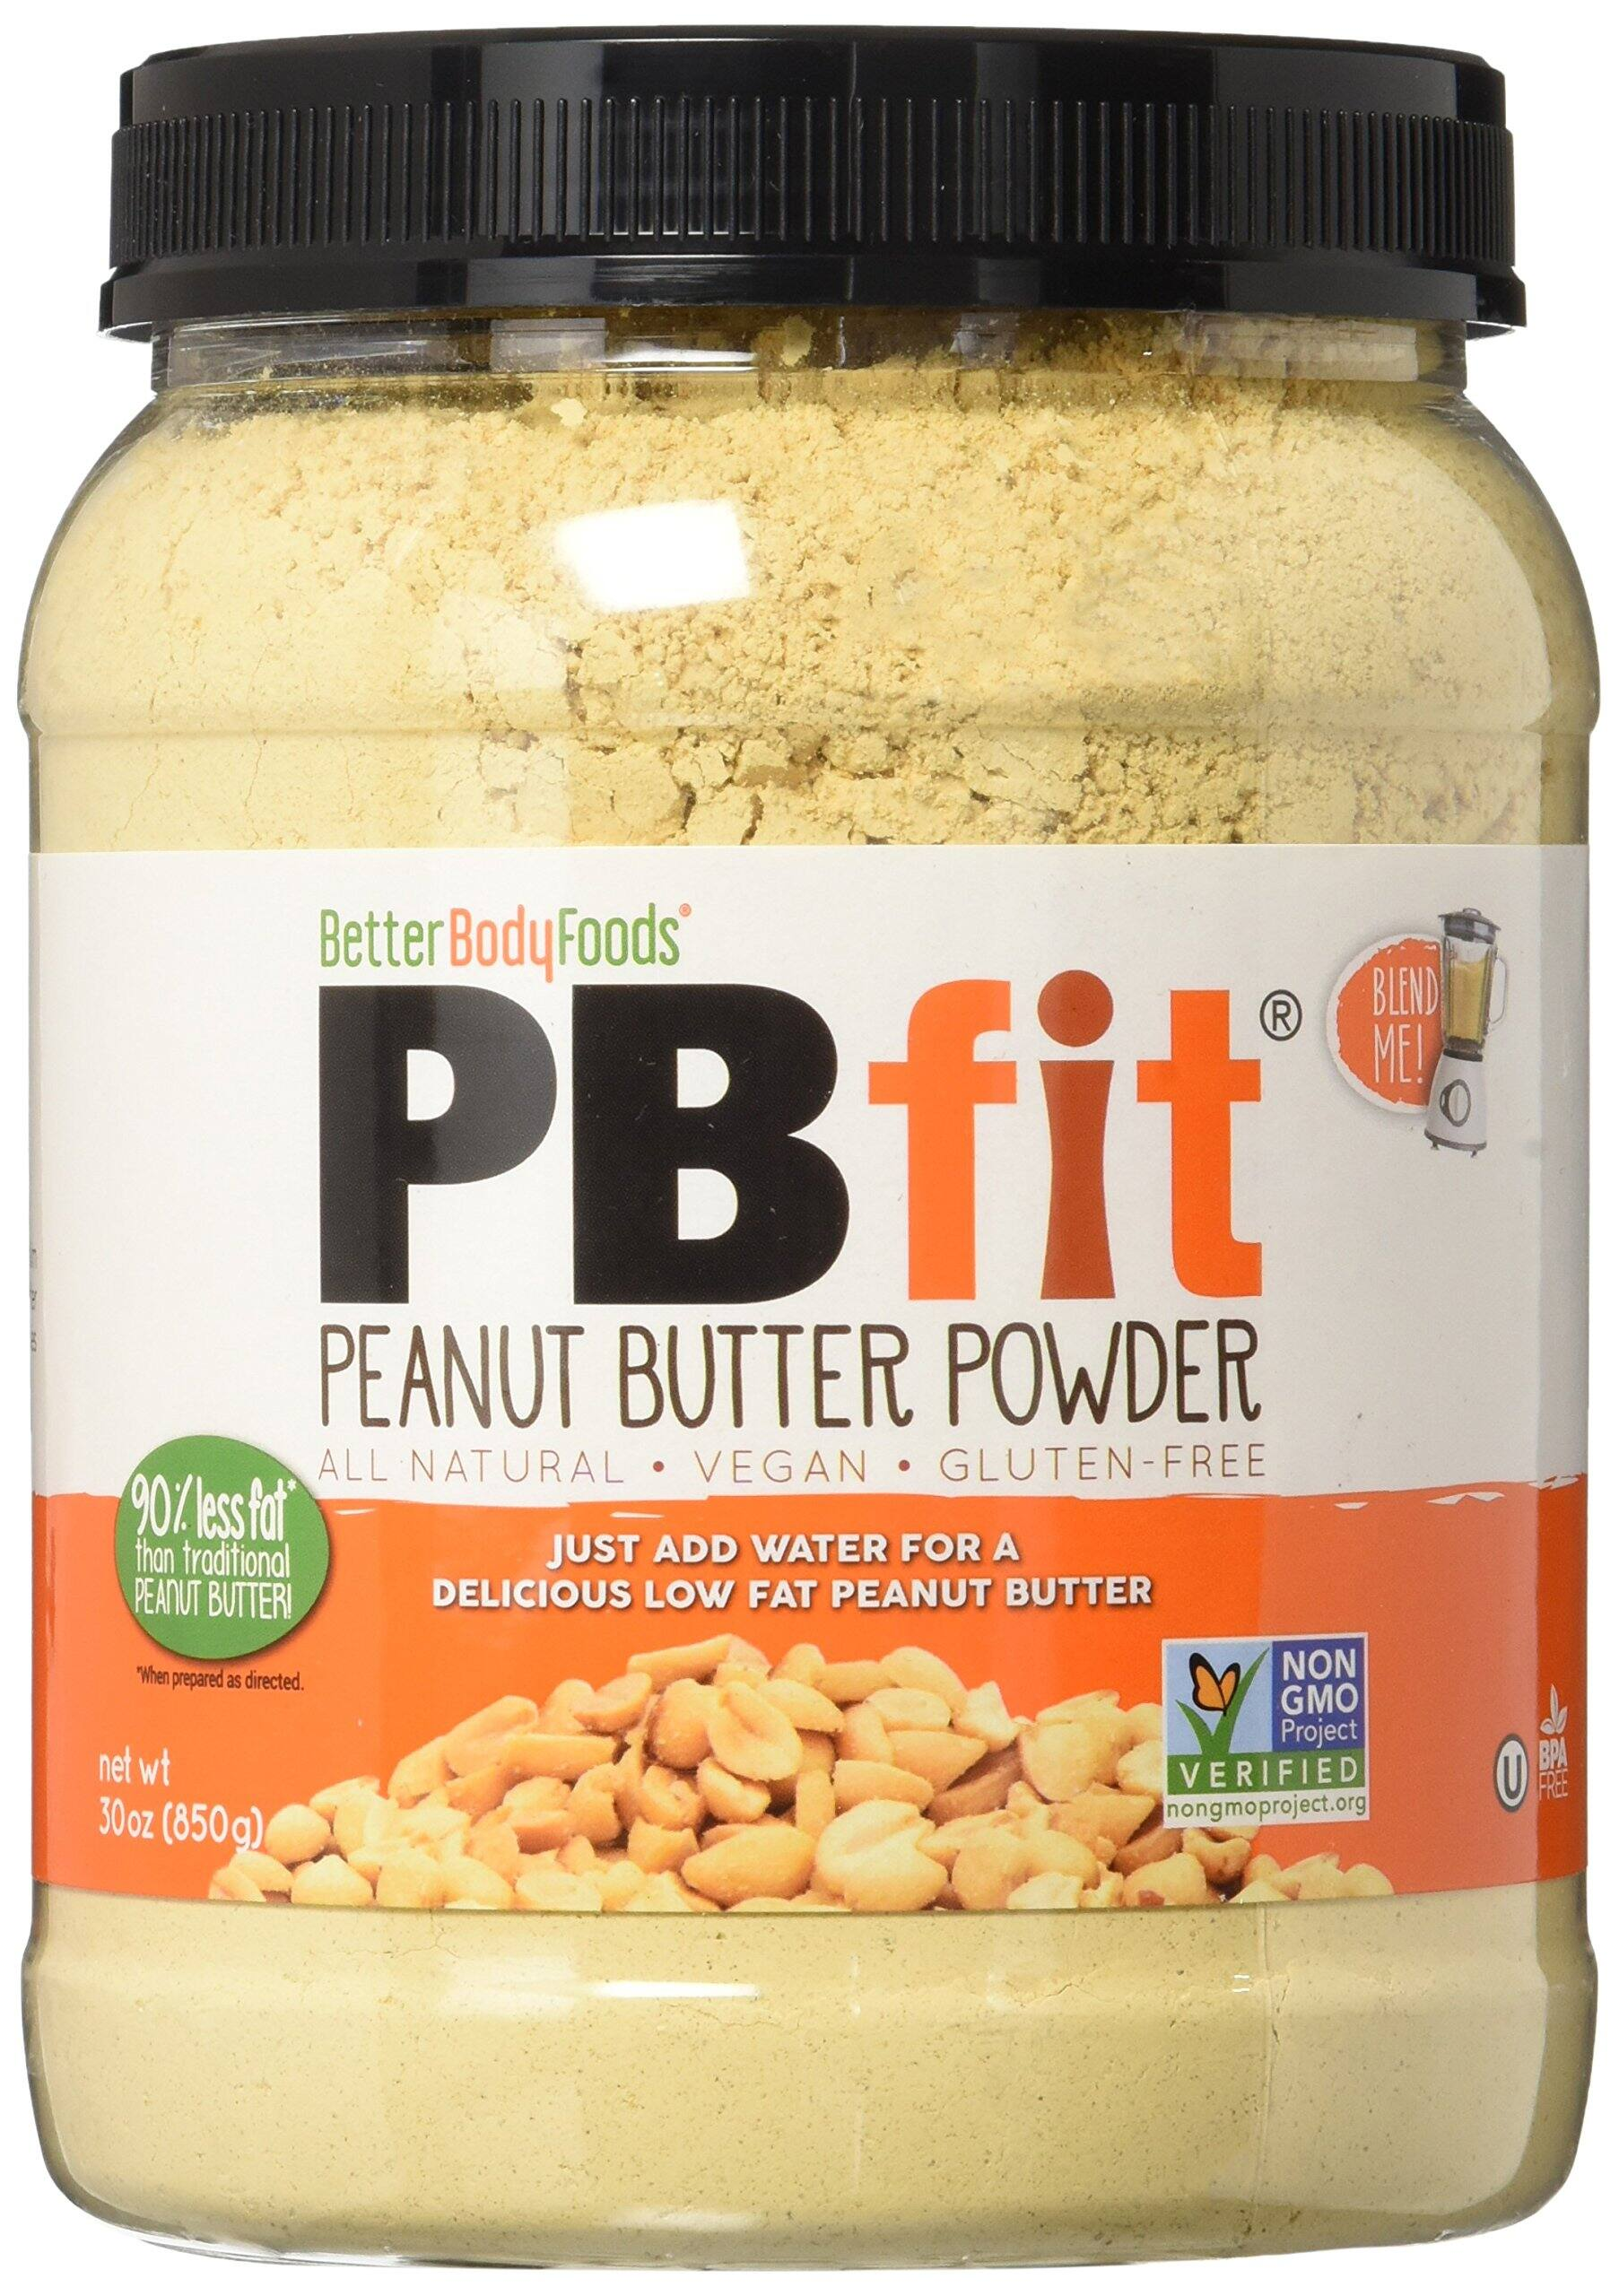 BetterBody Foods PBfit Organic All-Natural Peanut Butter Powder, 30 Ounce $13.41 @ Amazon FS w/ Prime